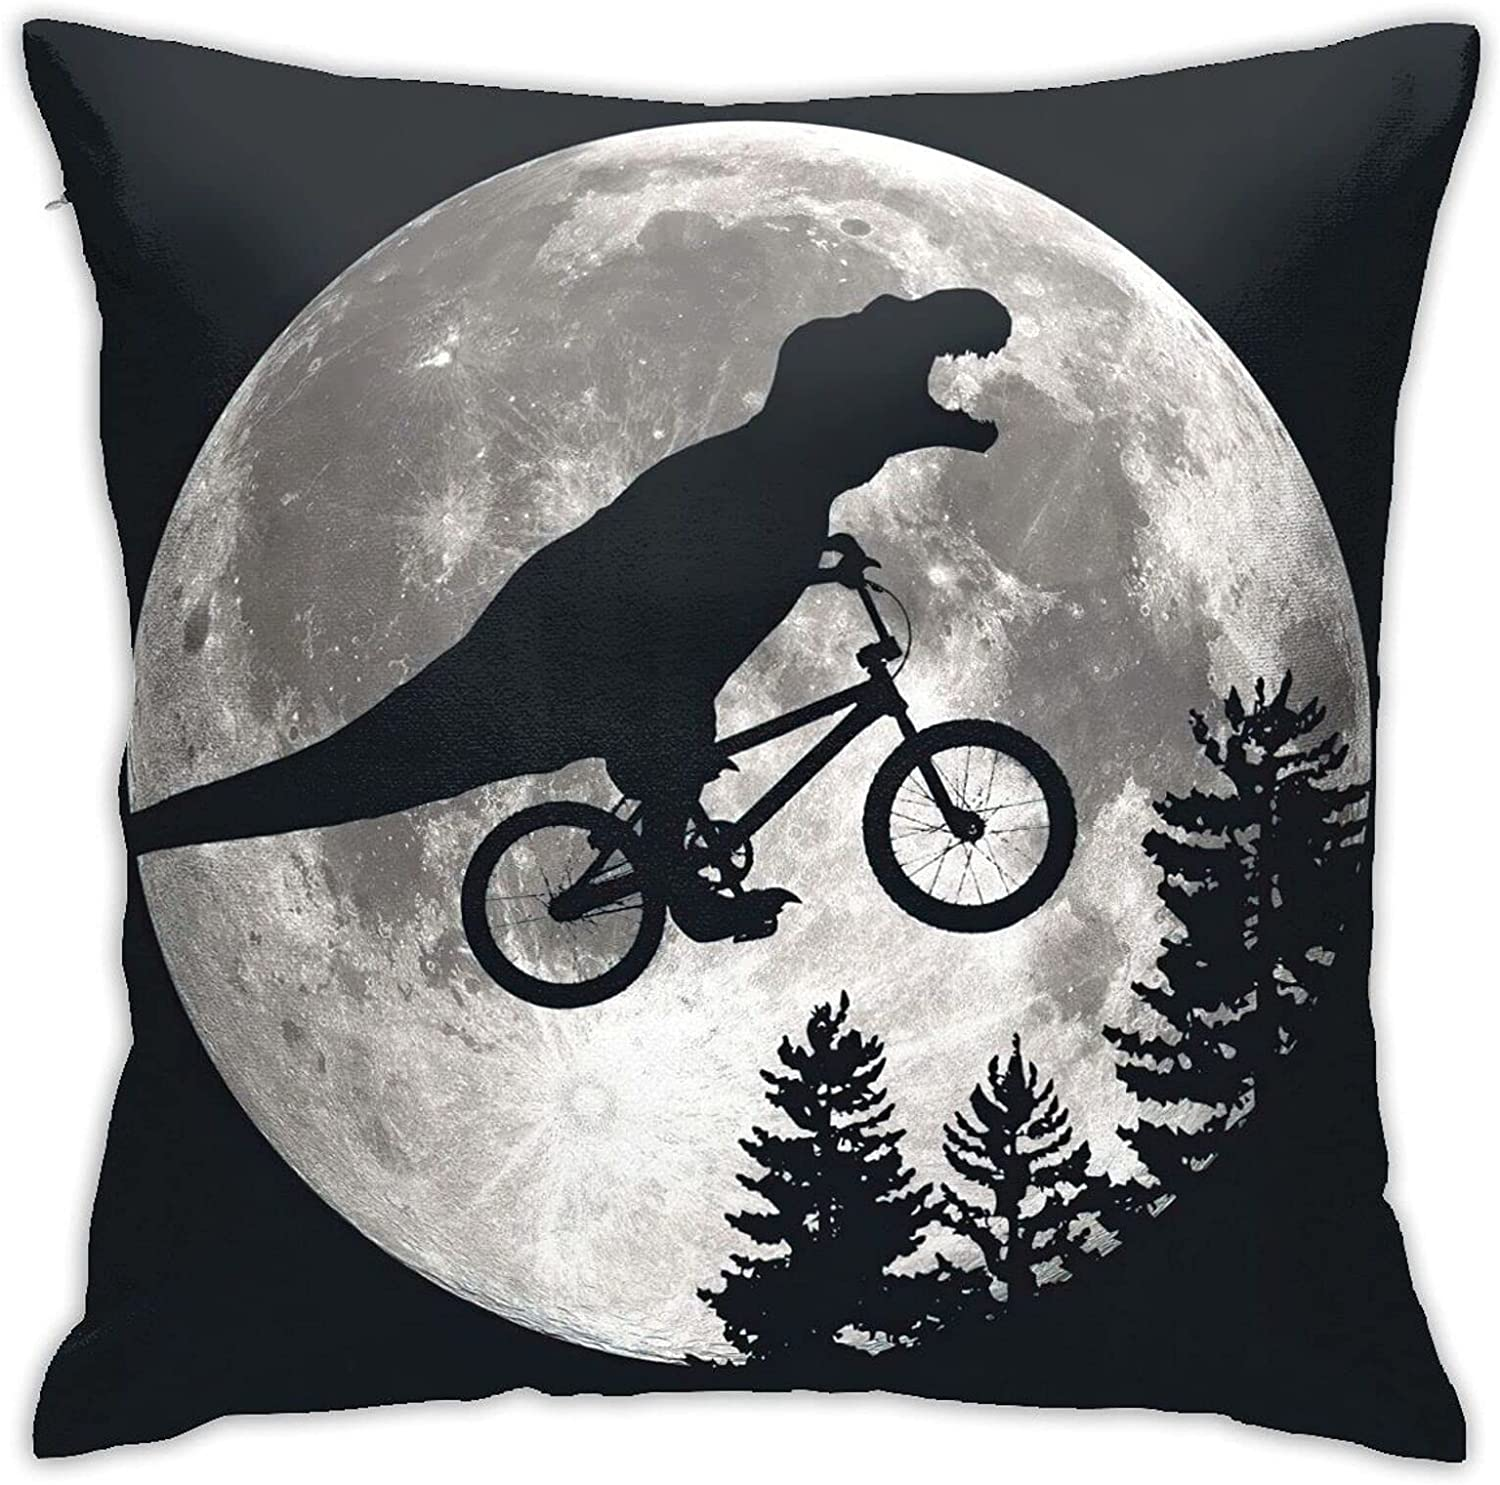 WAZHIJIA Dinosaur Riding Bicycle Decorative Throw Pillowcase Moon Animal Pillow Case Cushion Cover Square Pillow Covers for Car Sofa Home Decor 18 X 18 Inch